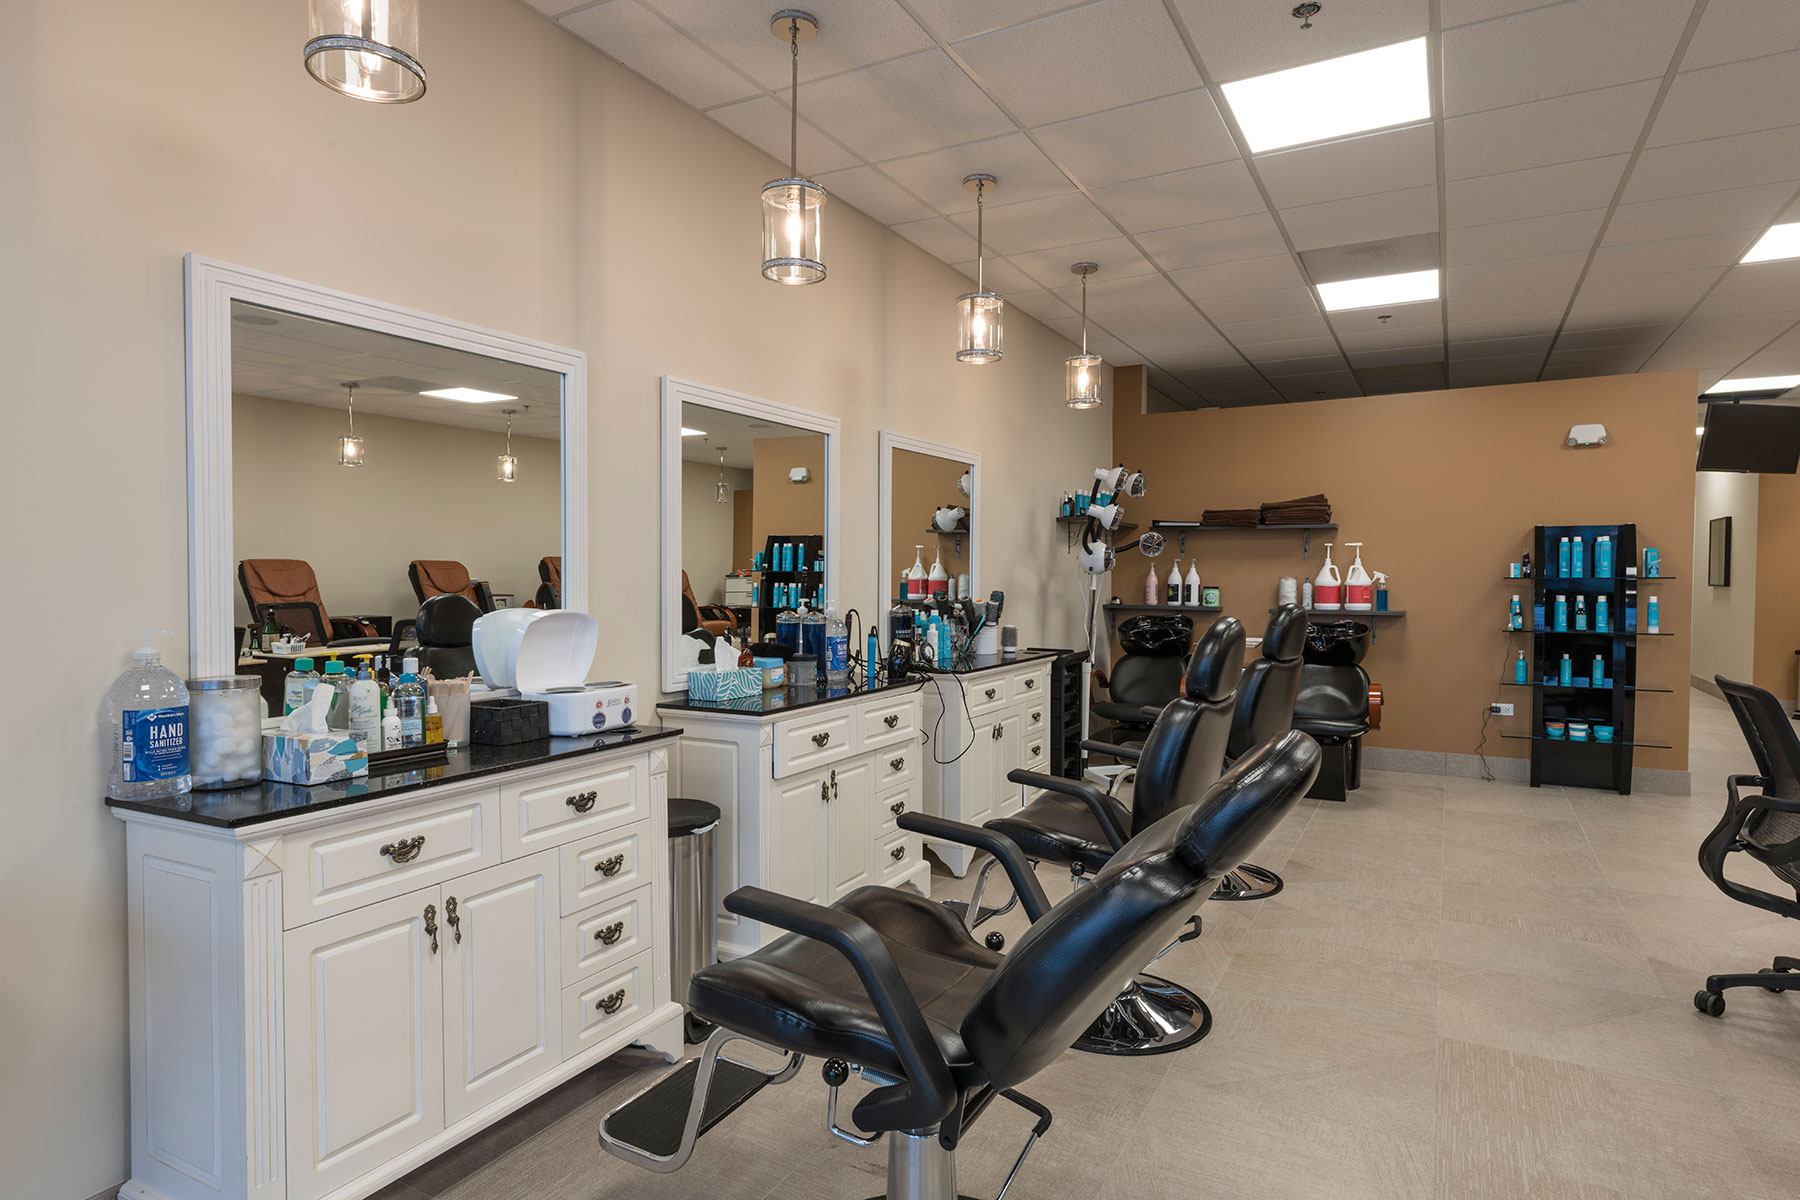 Haircut Stations2 - Hollywood Trendz Hair & Spa Salon, Addison Custom Home. America's Custom Home Builders: New Construction, Remodeling, Restoration Services. Residential and Commercial.